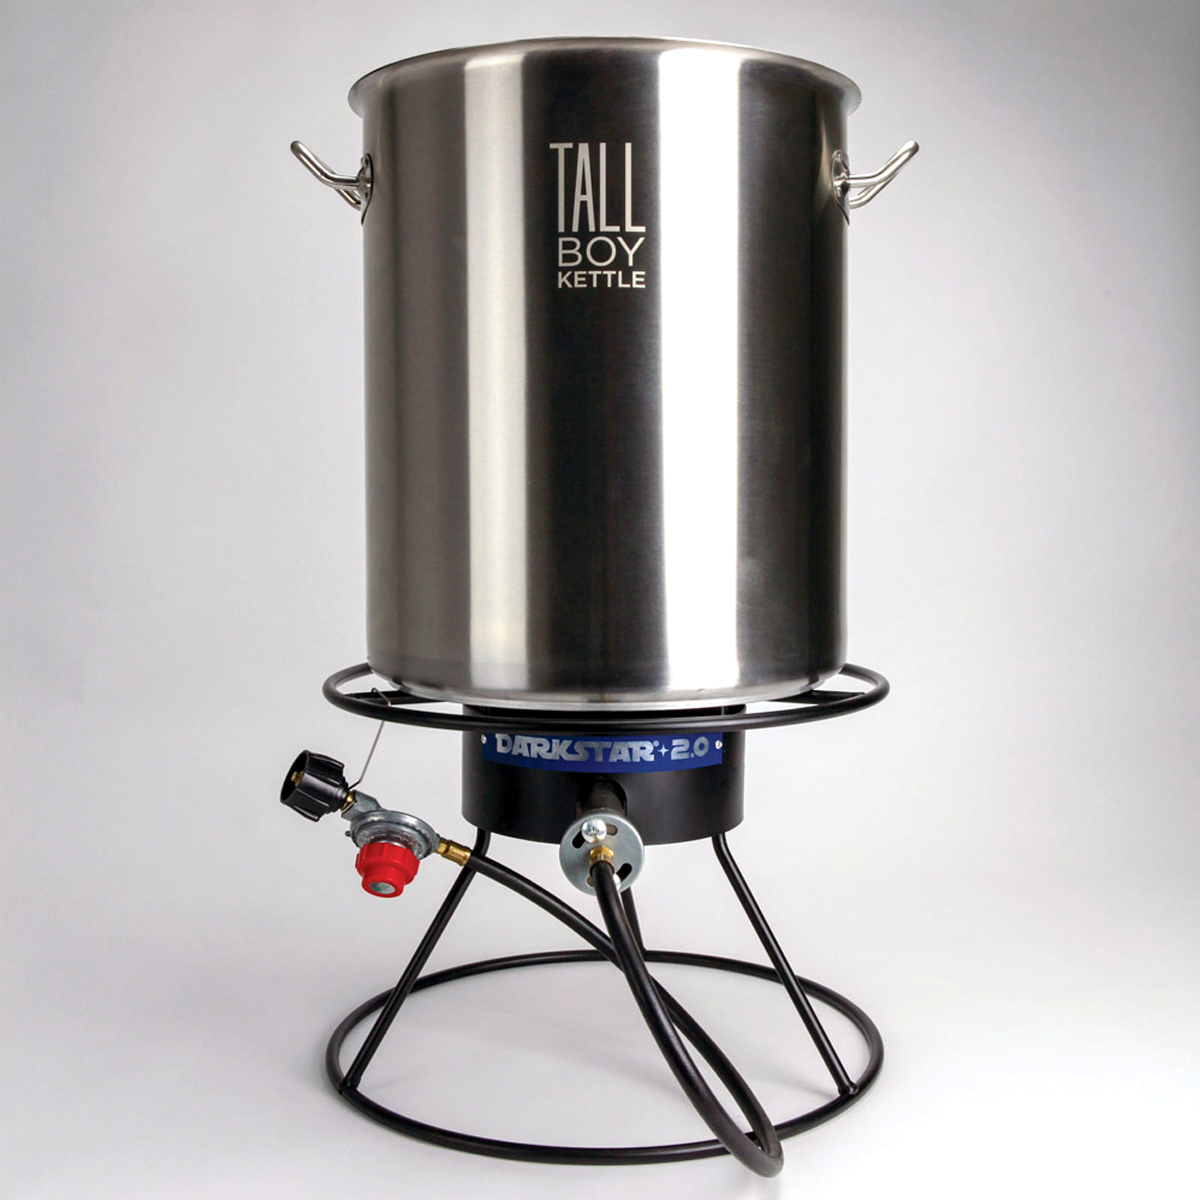 Free DarkStar Home Brewing Burner with Orders Over $125 Coupon Code